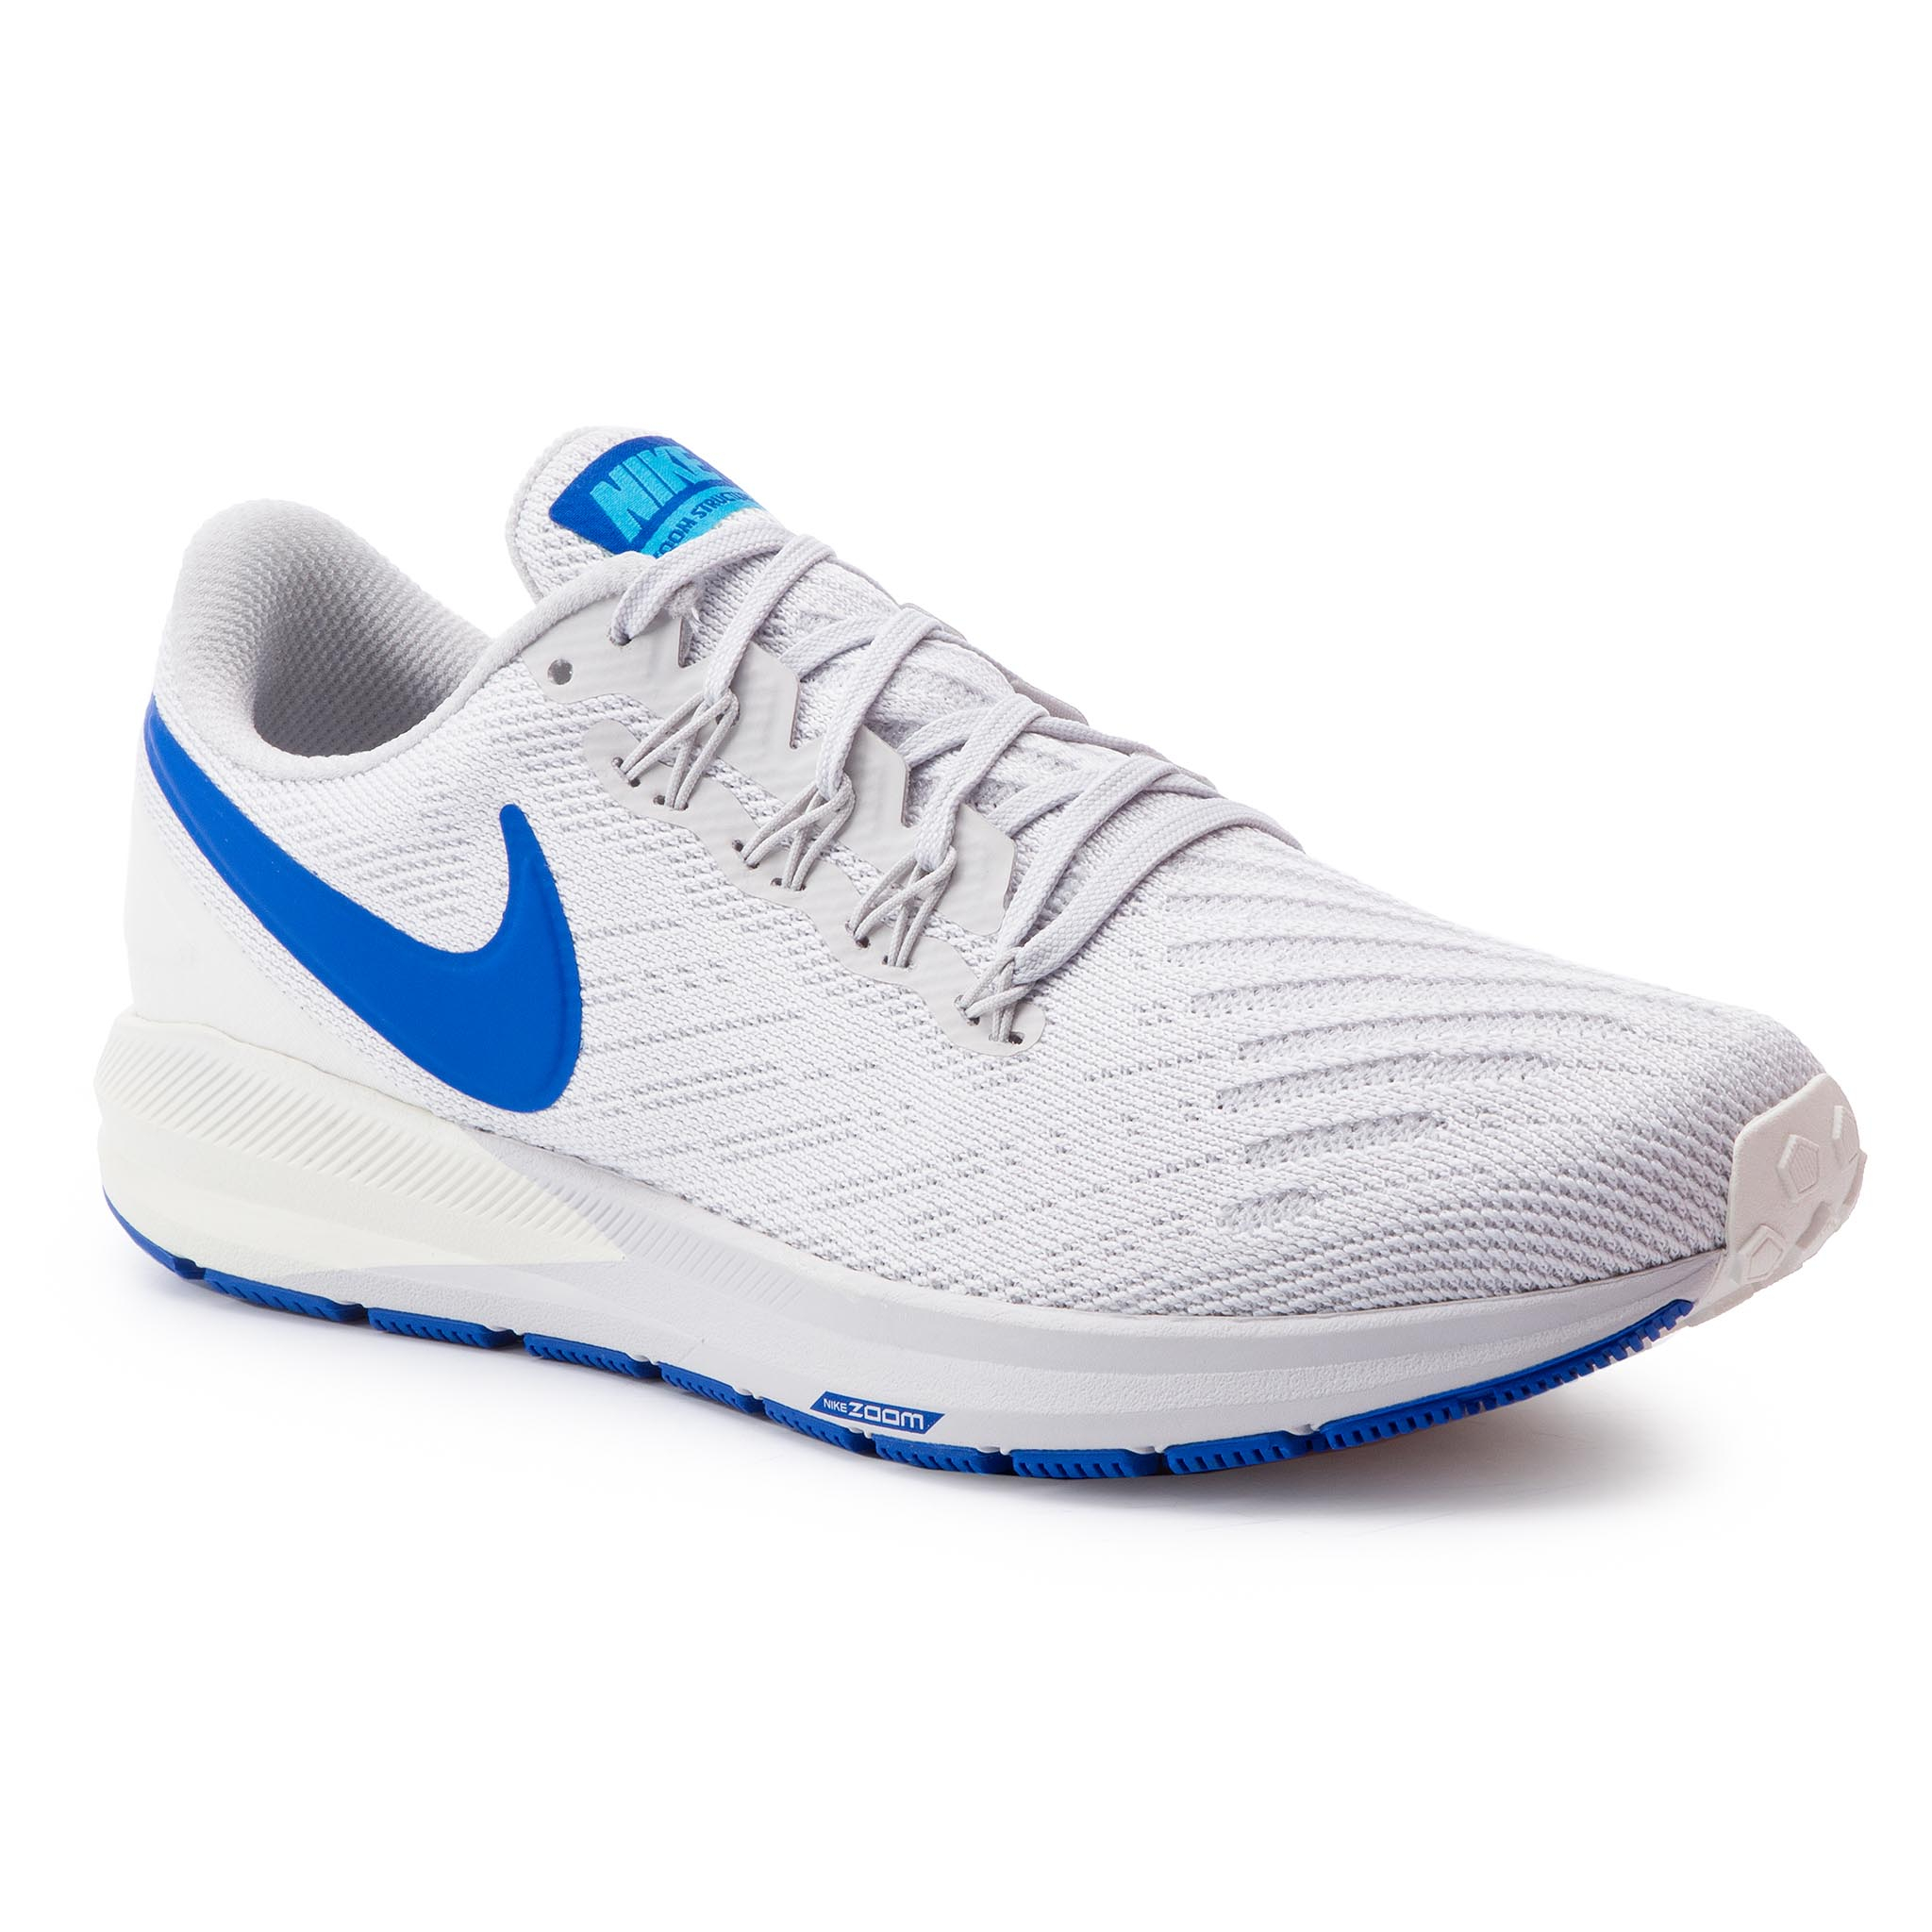 a9a2290d9fe92 Shoes NIKE - Air Zoom Structure 22 AA1636 005 Black/Blue Fury ...